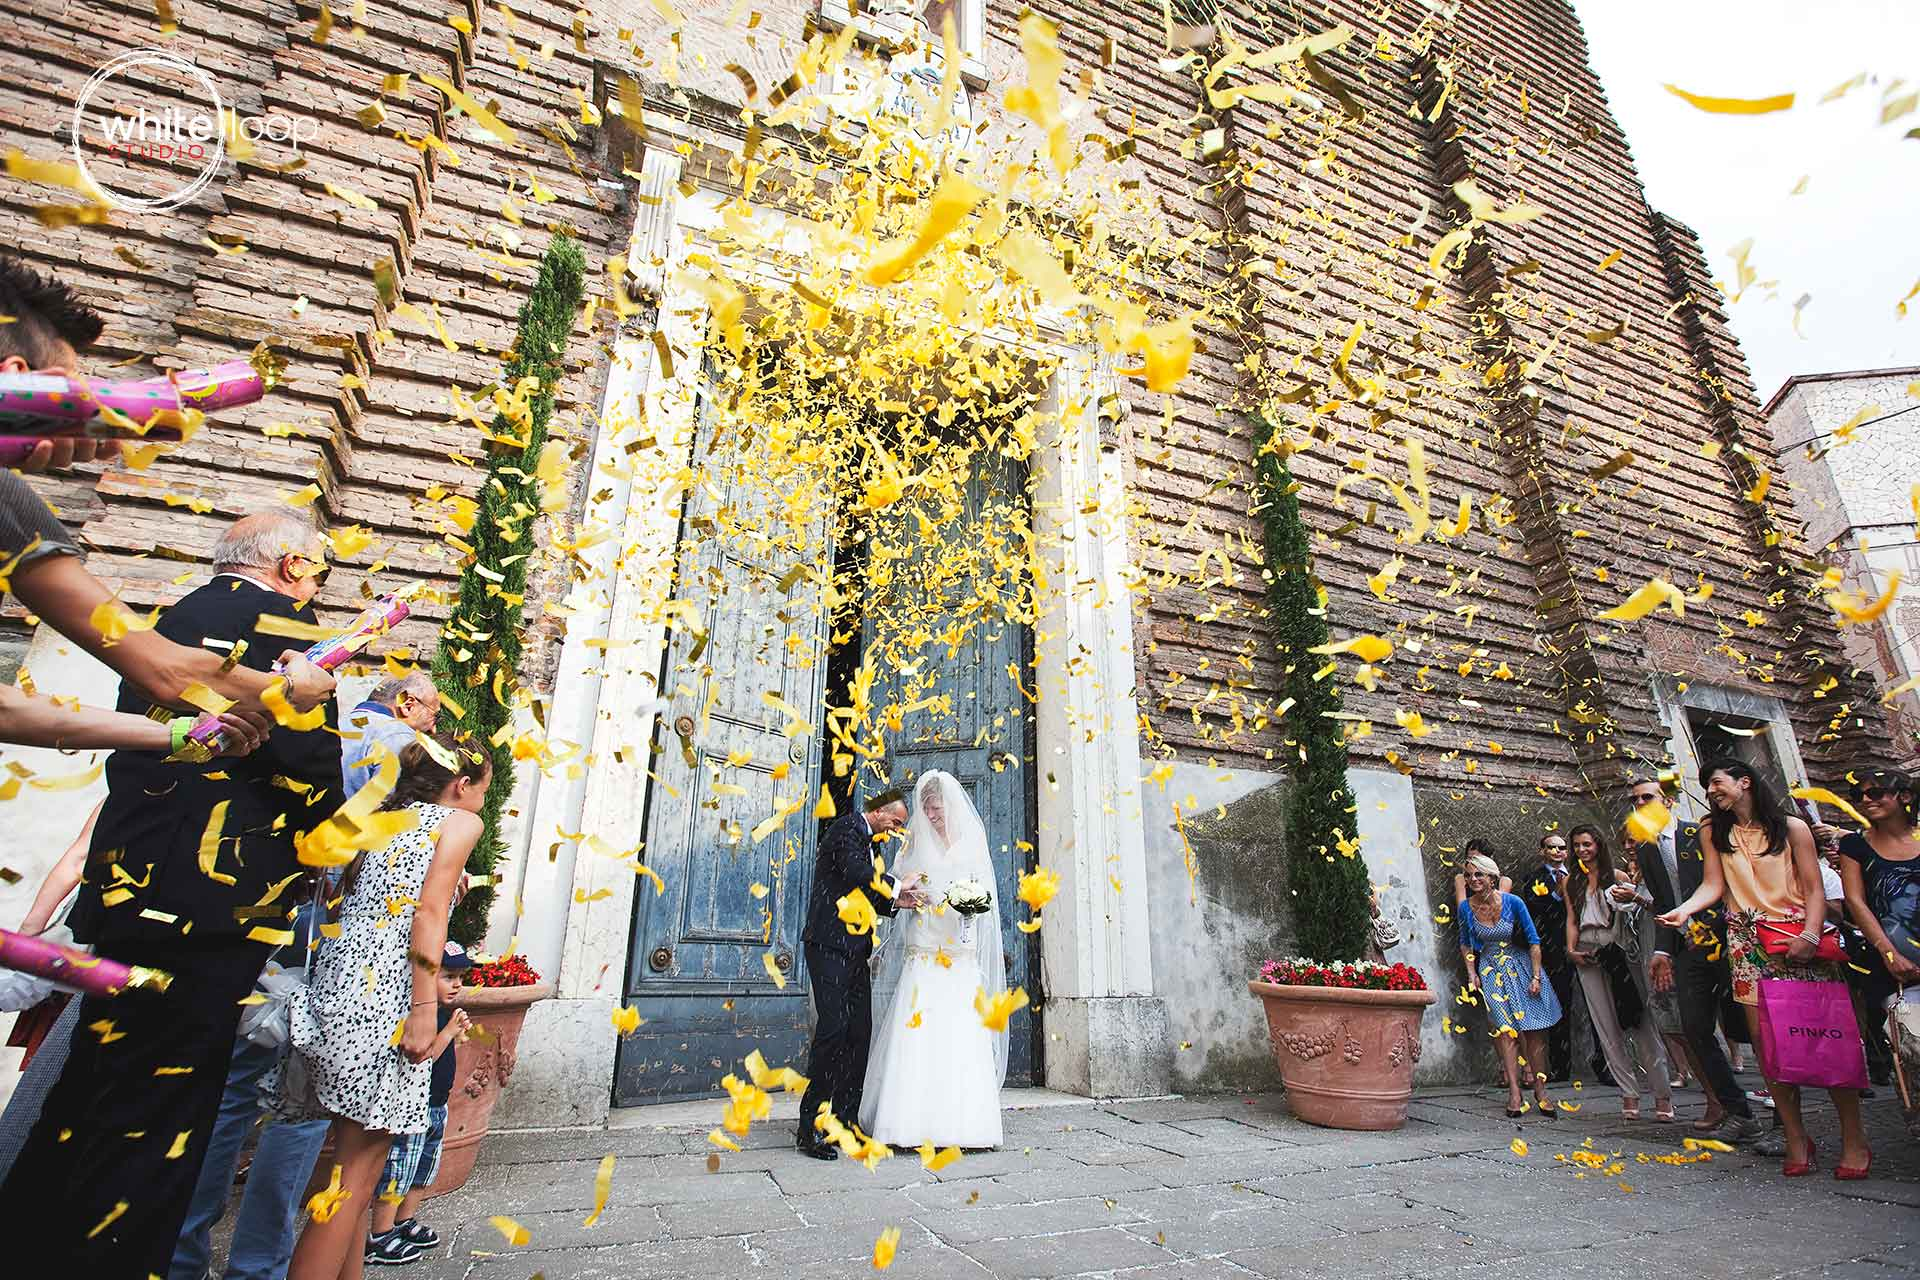 the Italian tradition wants that the guests throw up rise to the bride and groom, for finishing the ceremony of engagement outside the church.